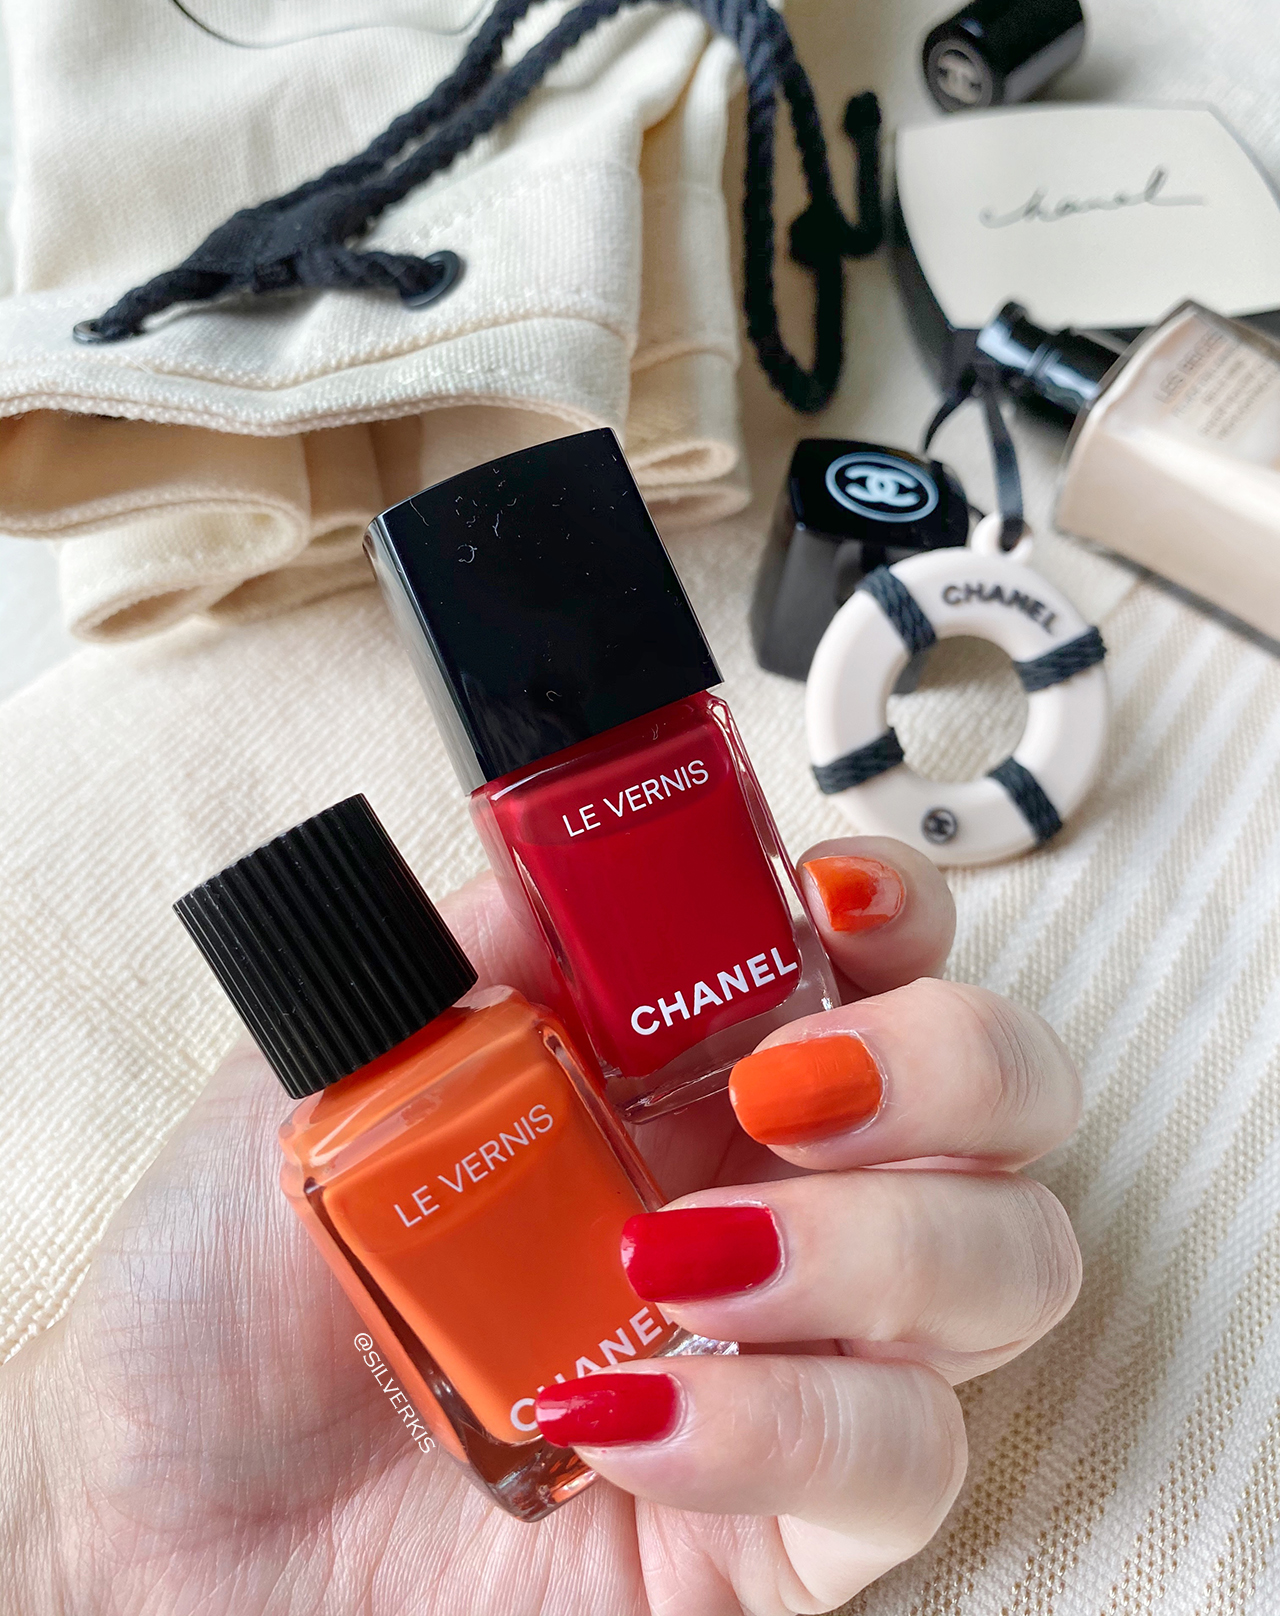 Chanel Les Beiges 2020 Le Vernis Cruise & Sailor